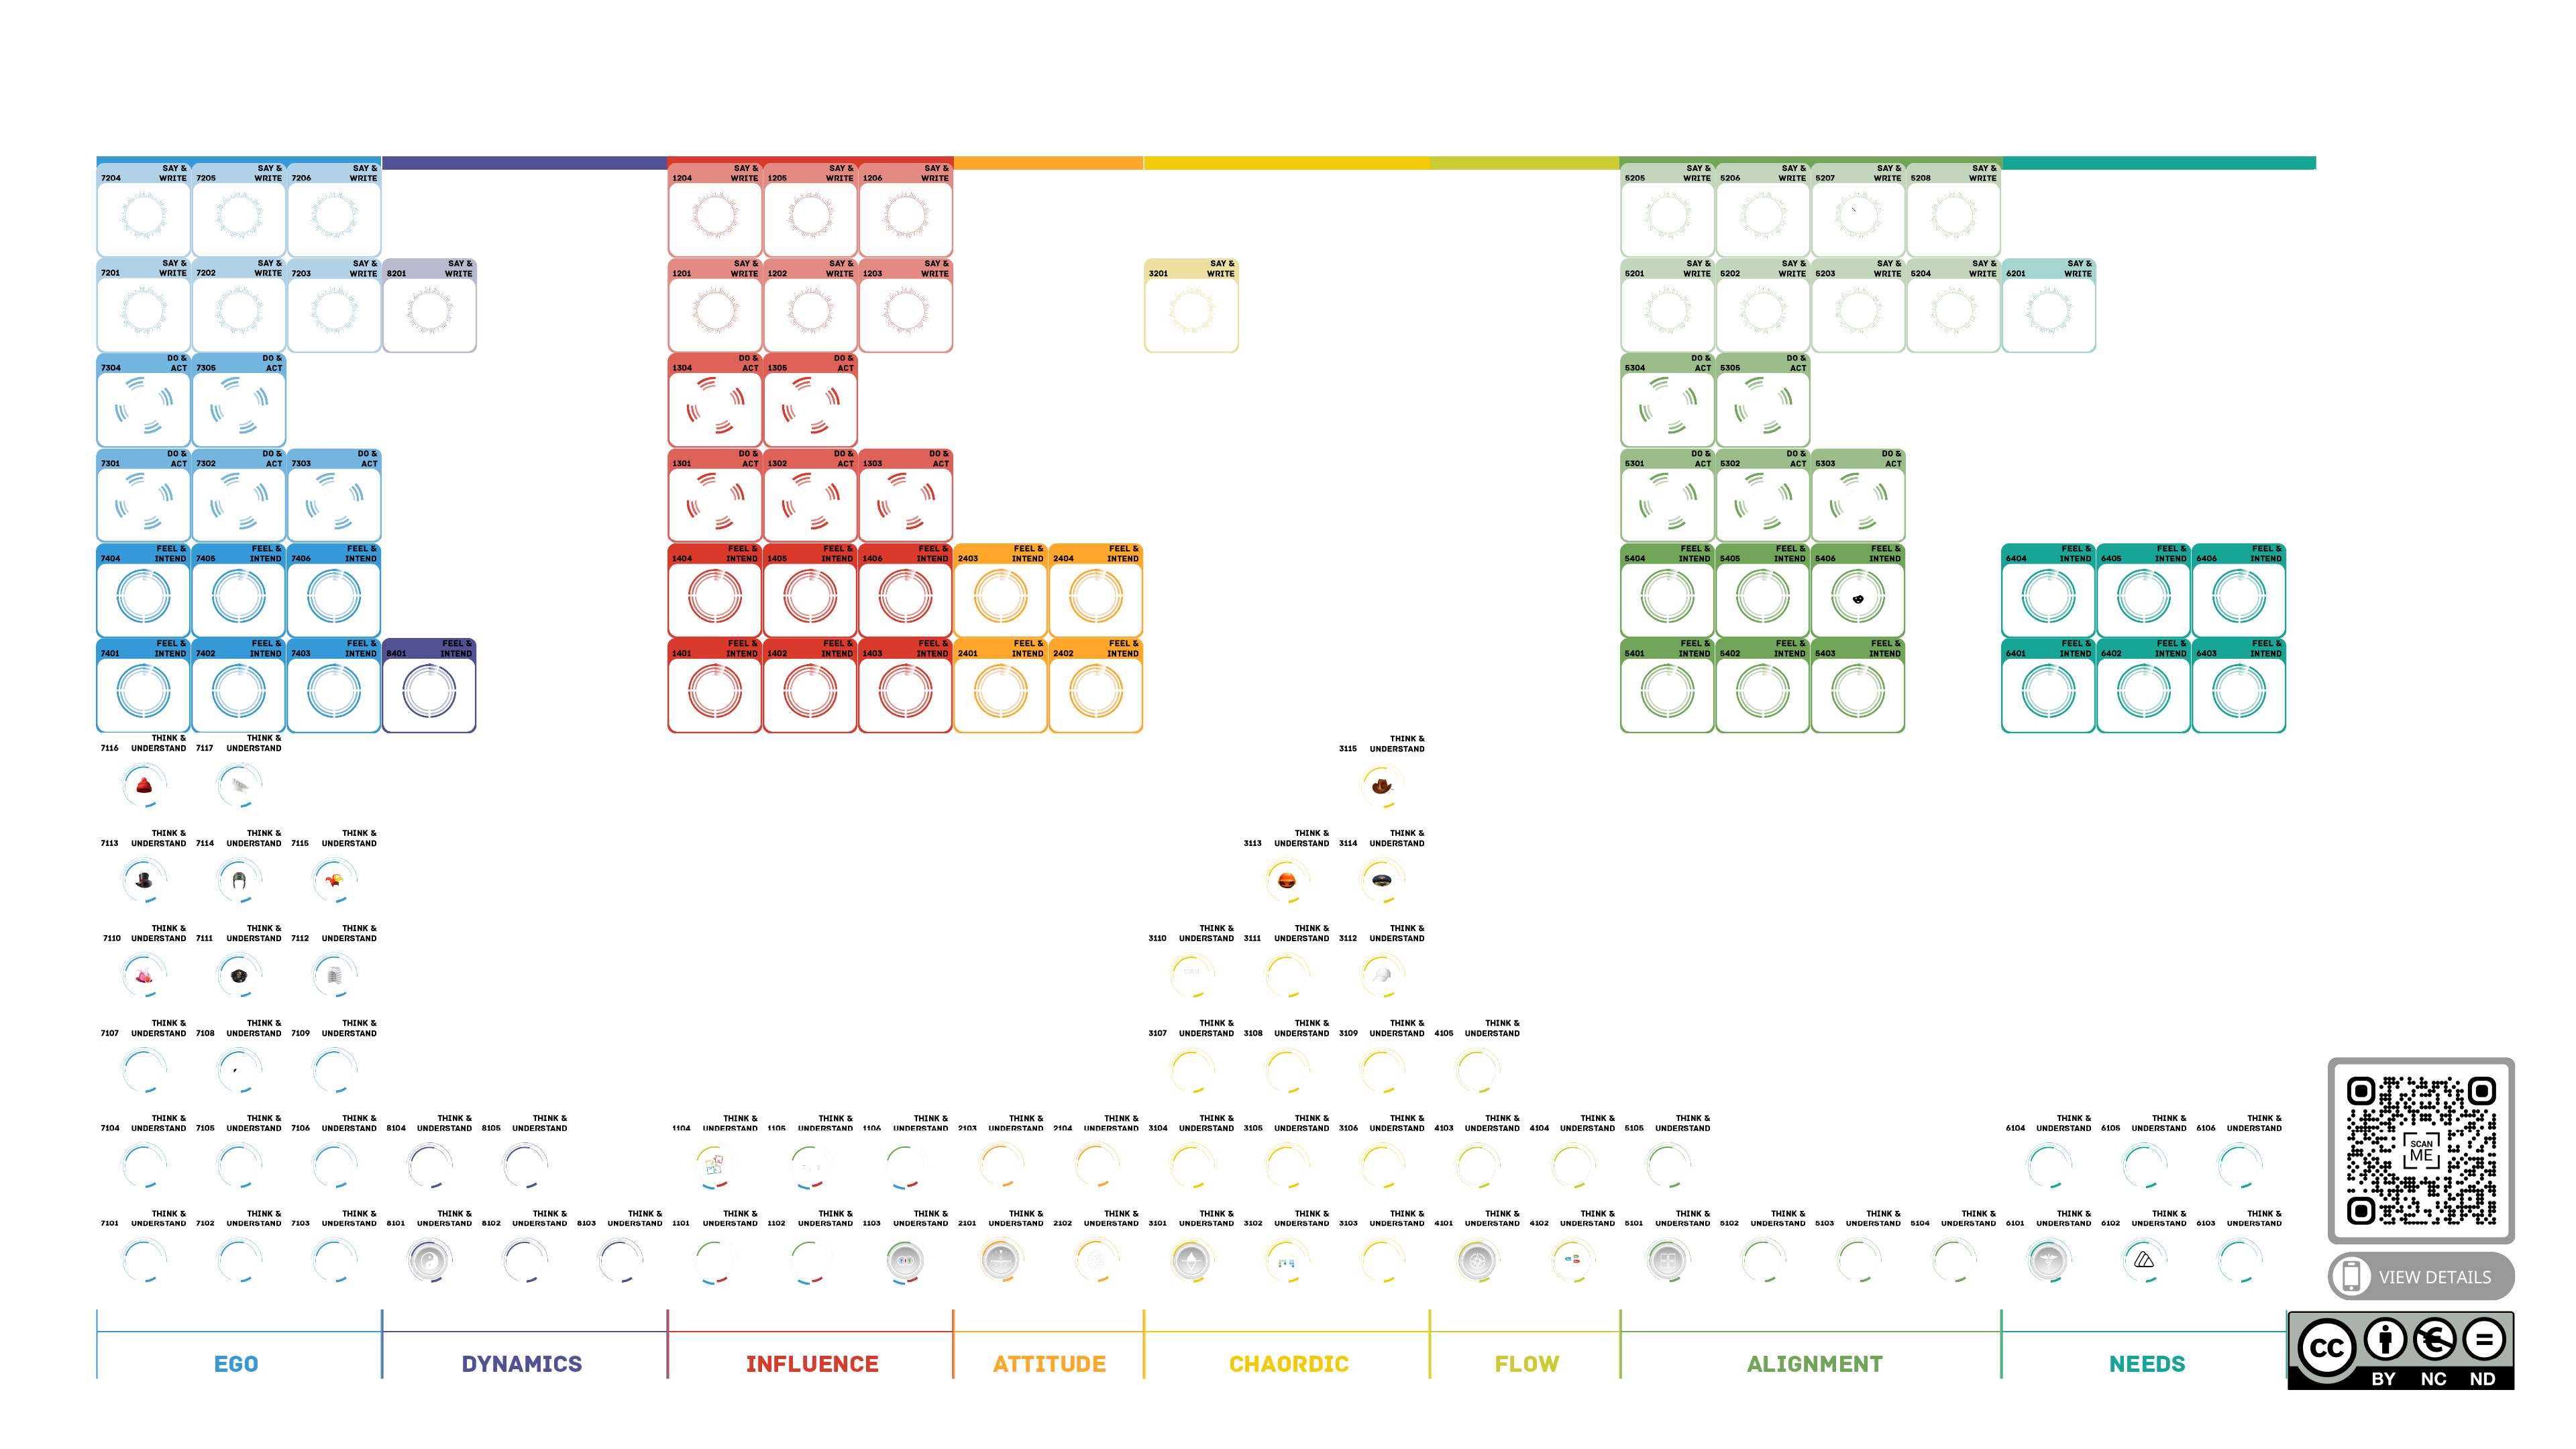 The Periodic Table of Communication